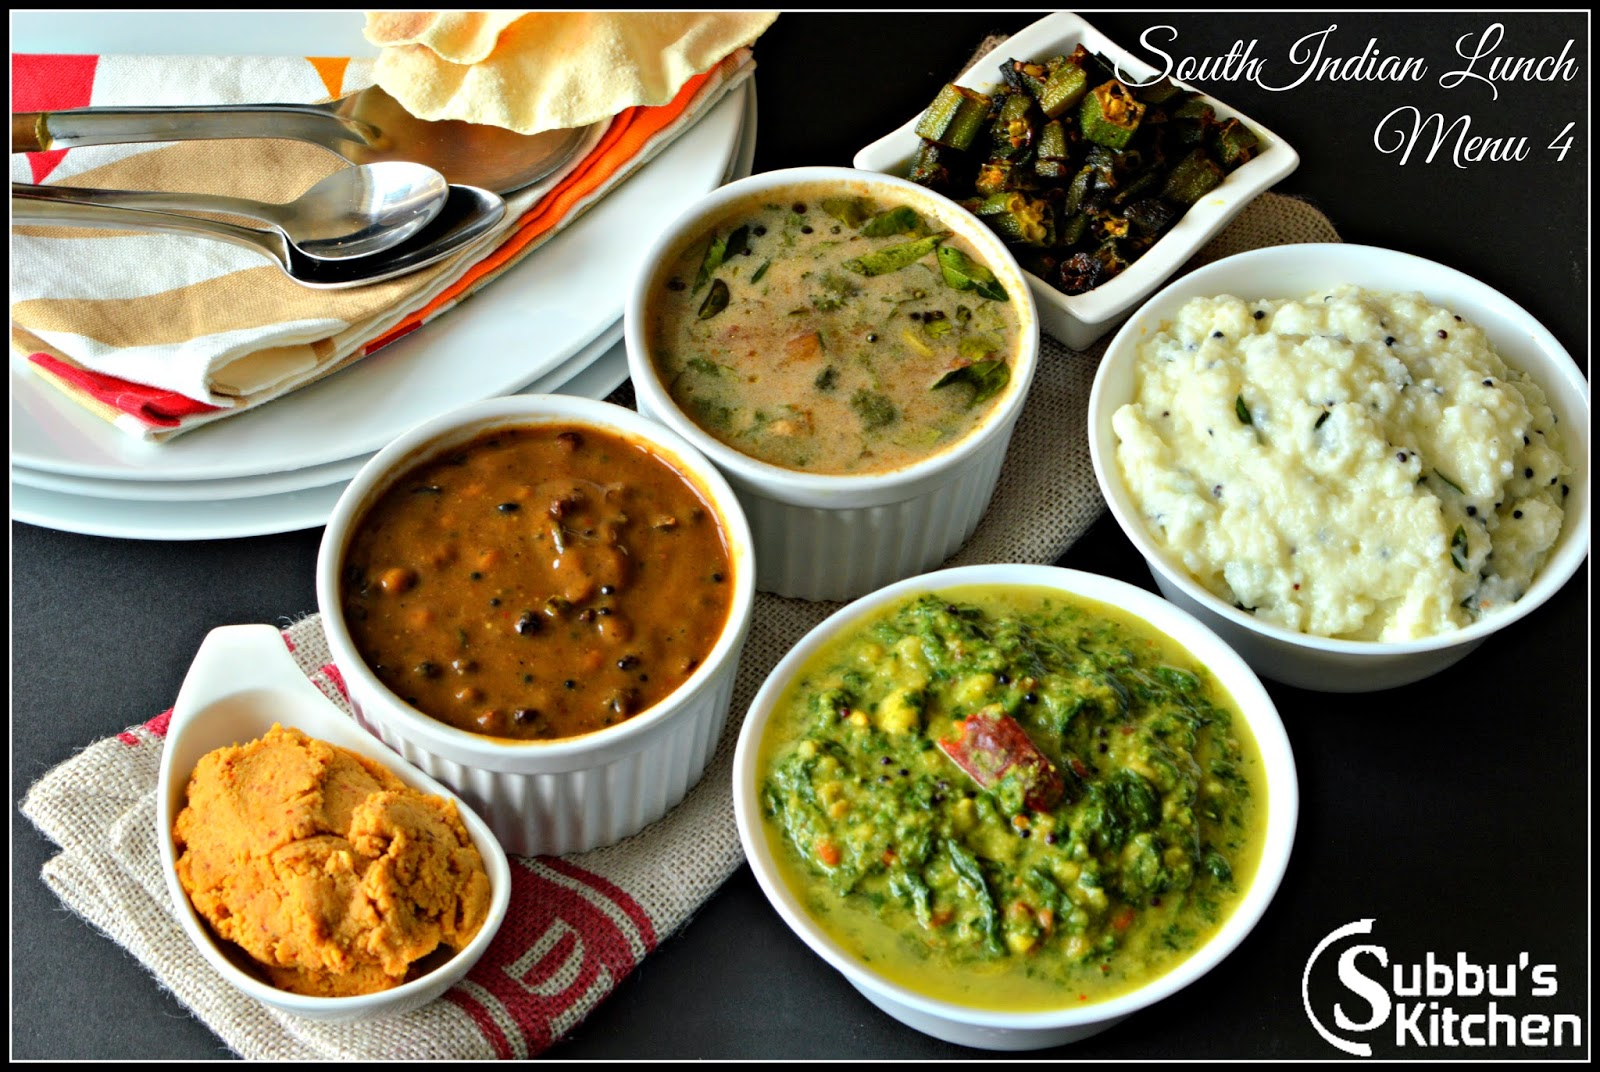 South Indian Lunch Menu 4 - Vathakuzhambu, Araitha Rasam ...